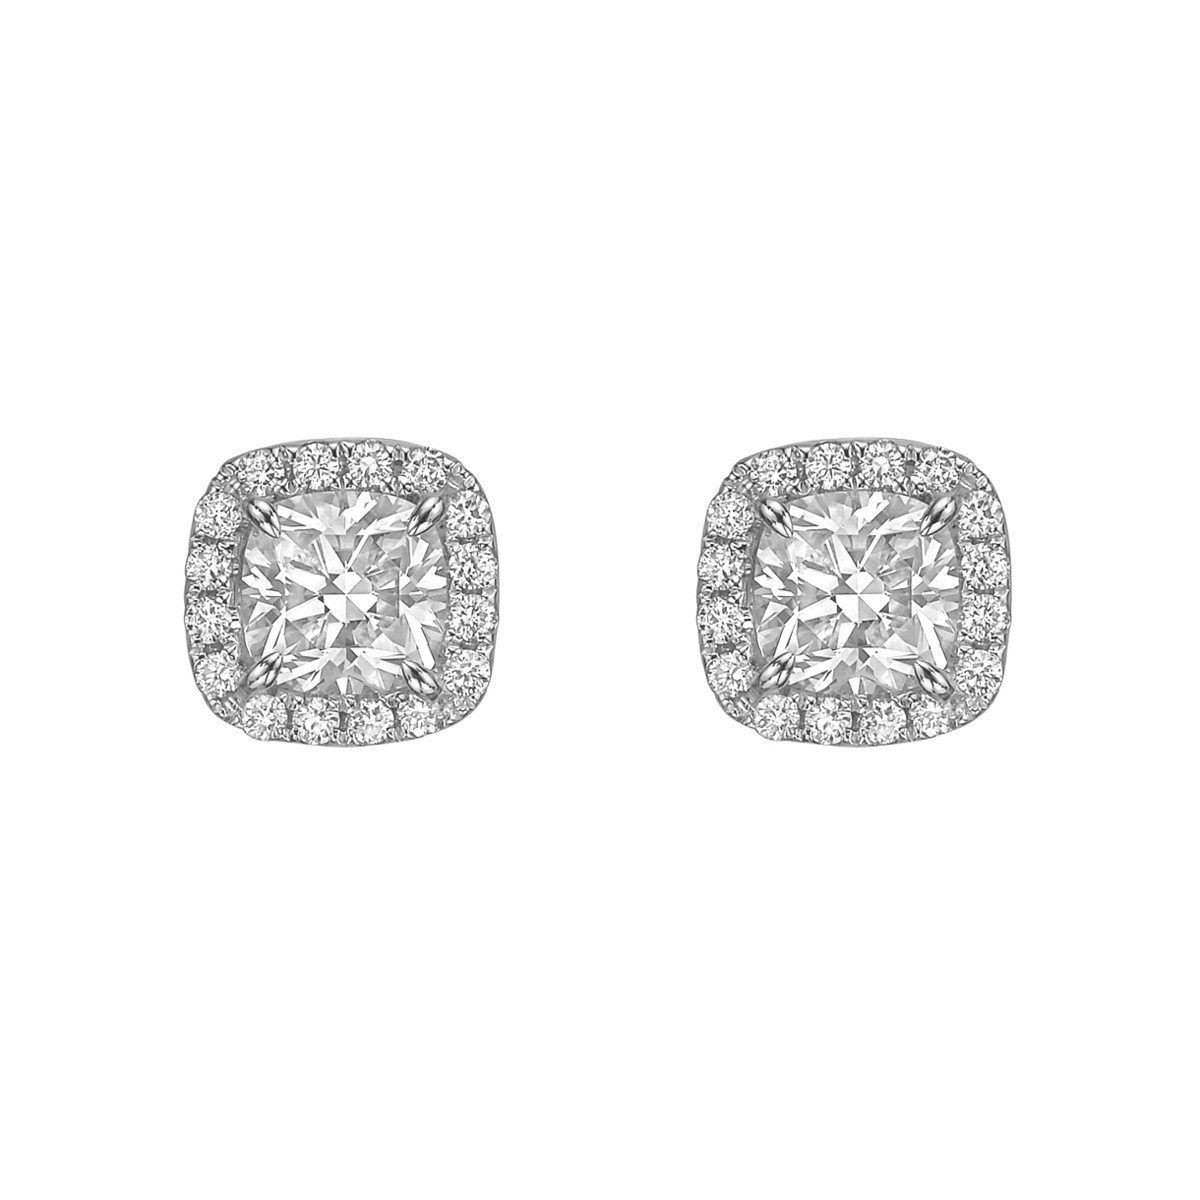 Cushion Brilliant-Cut Diamond Halo Stud Earrings